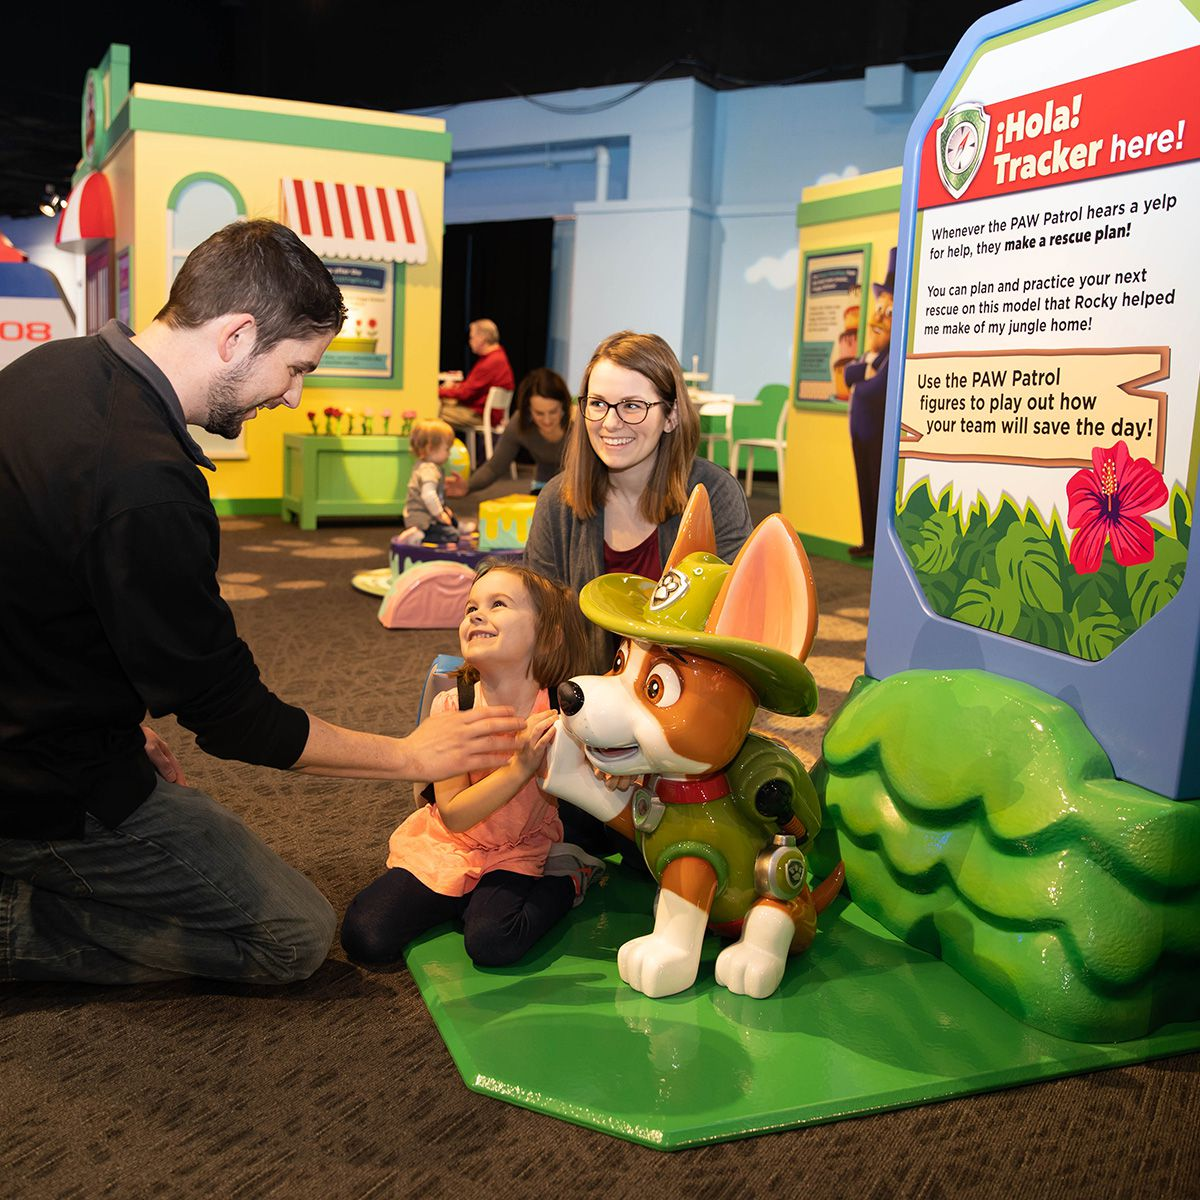 PAW Patrol Exhibit Coming To Children's Museum Of Memphis